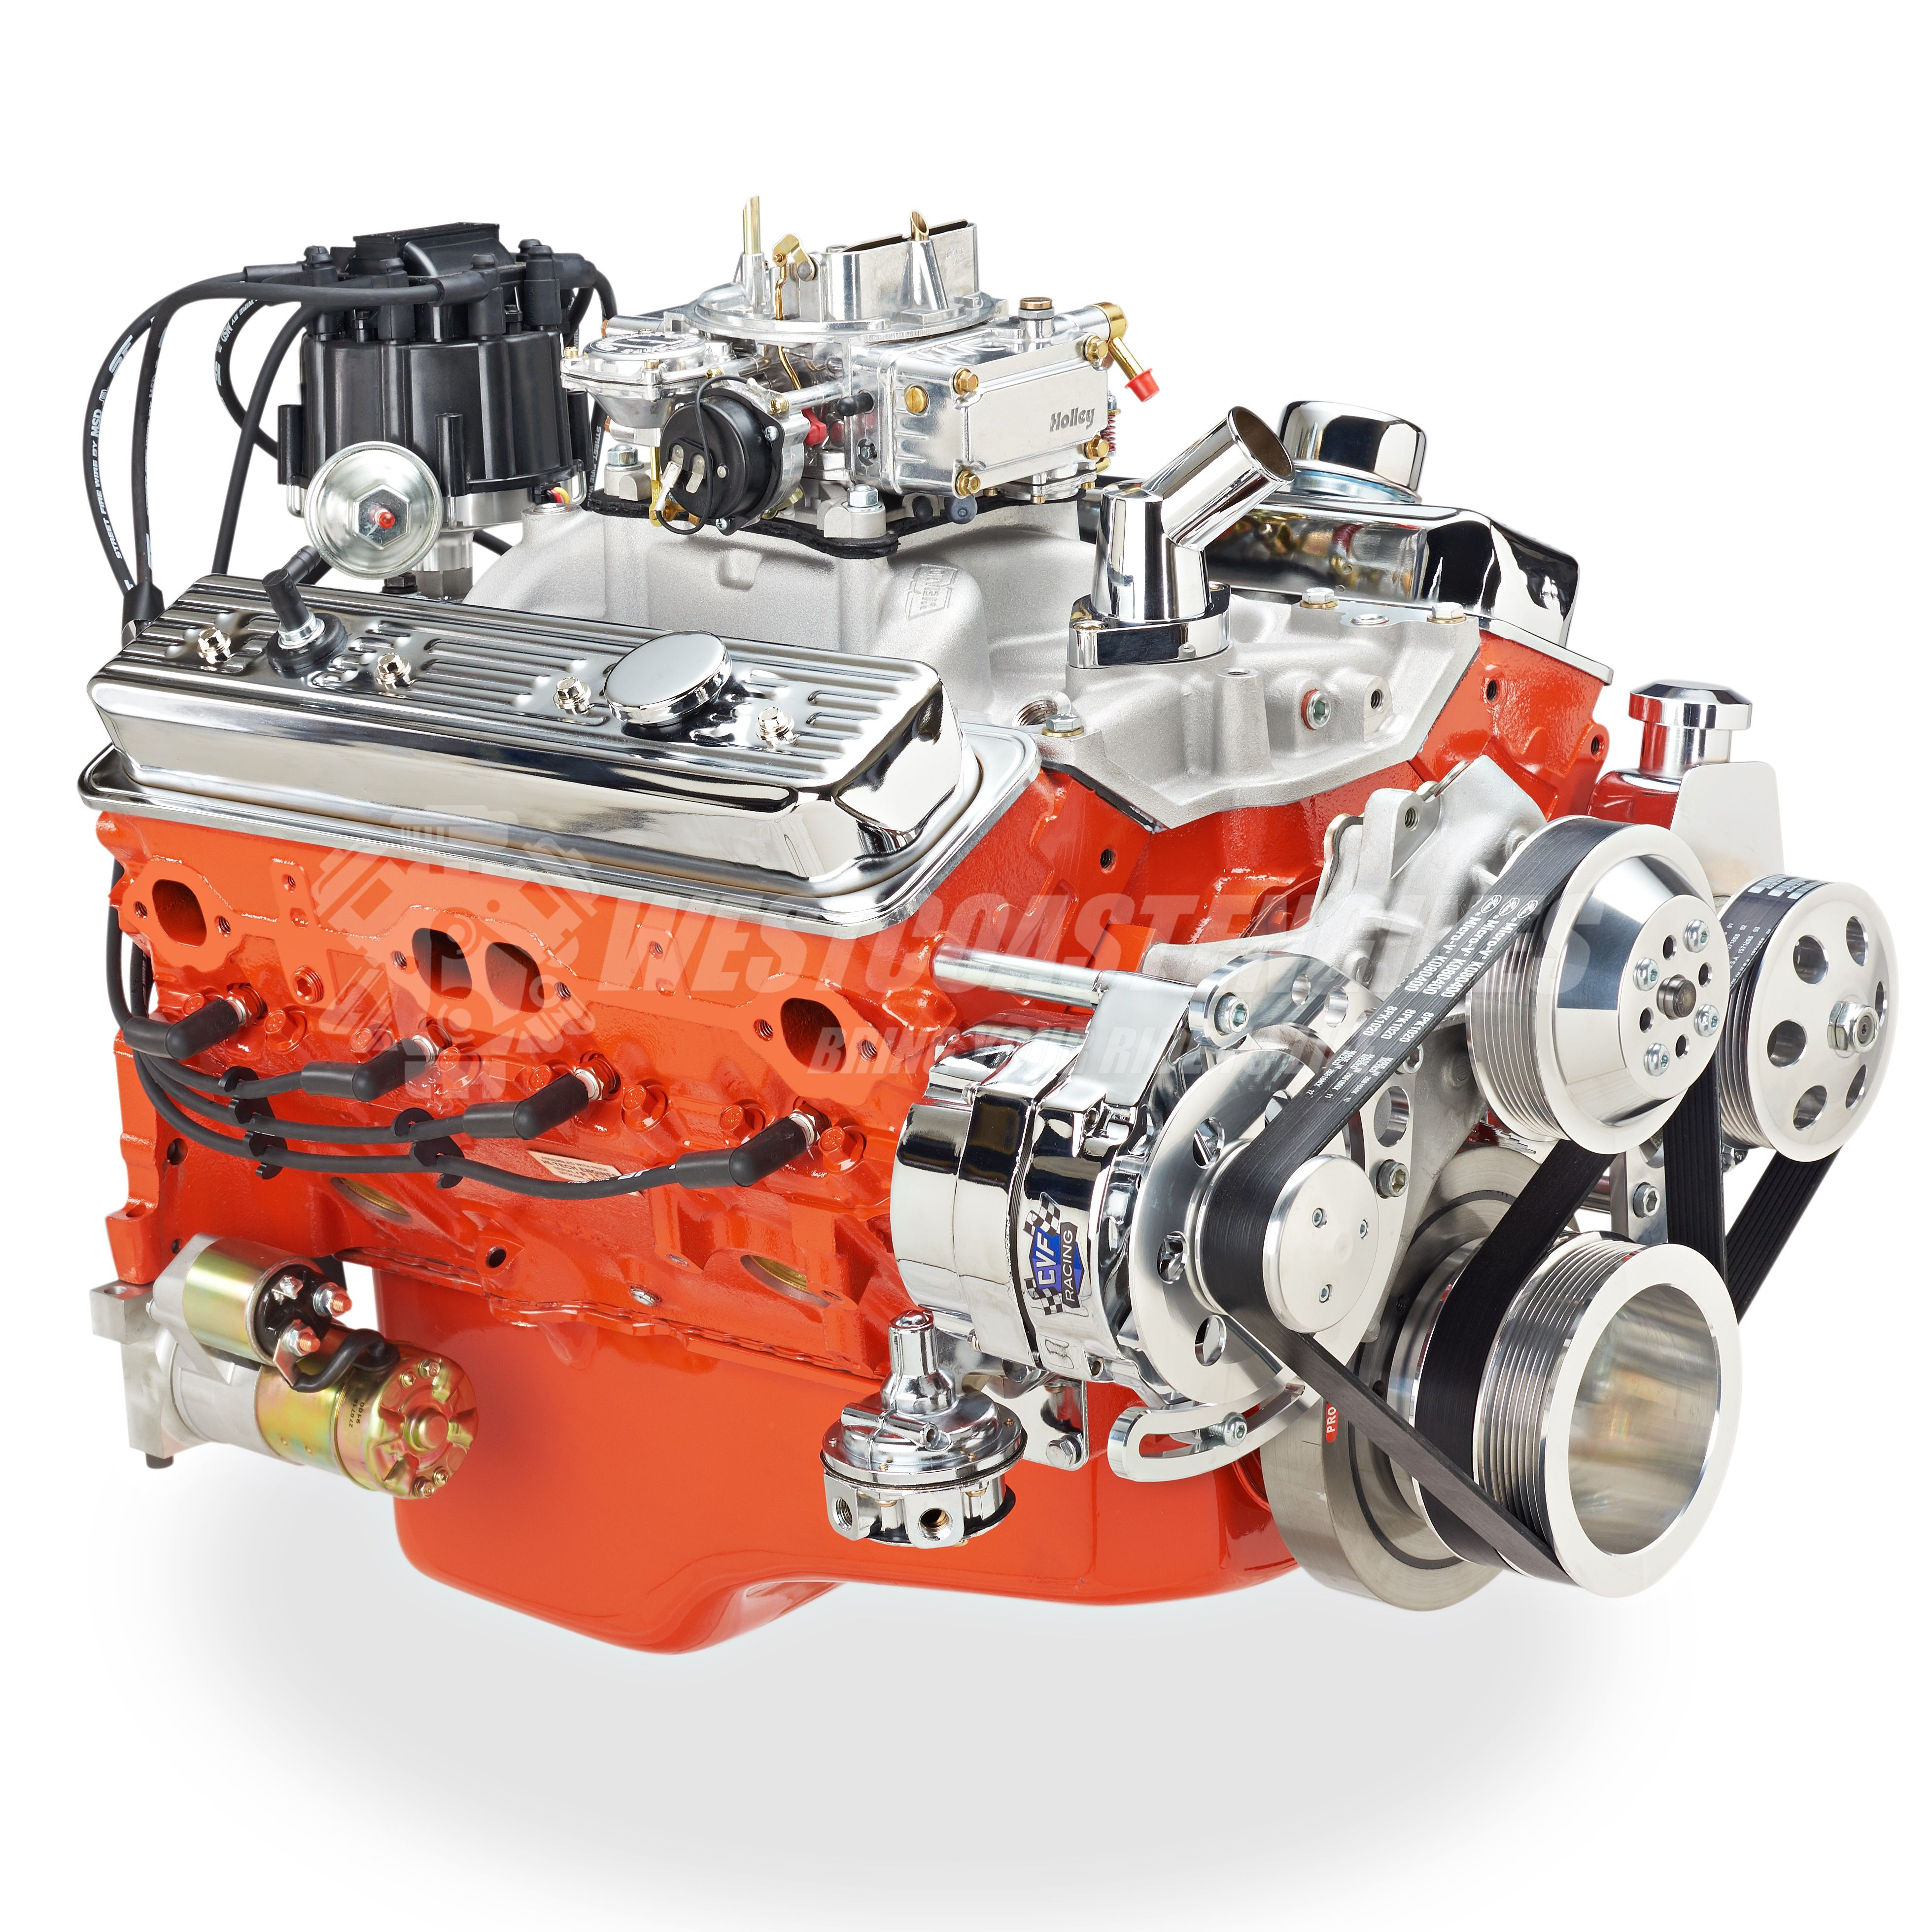 Chevy 350 Small Block Engines For Sale Crate Engines Chevy